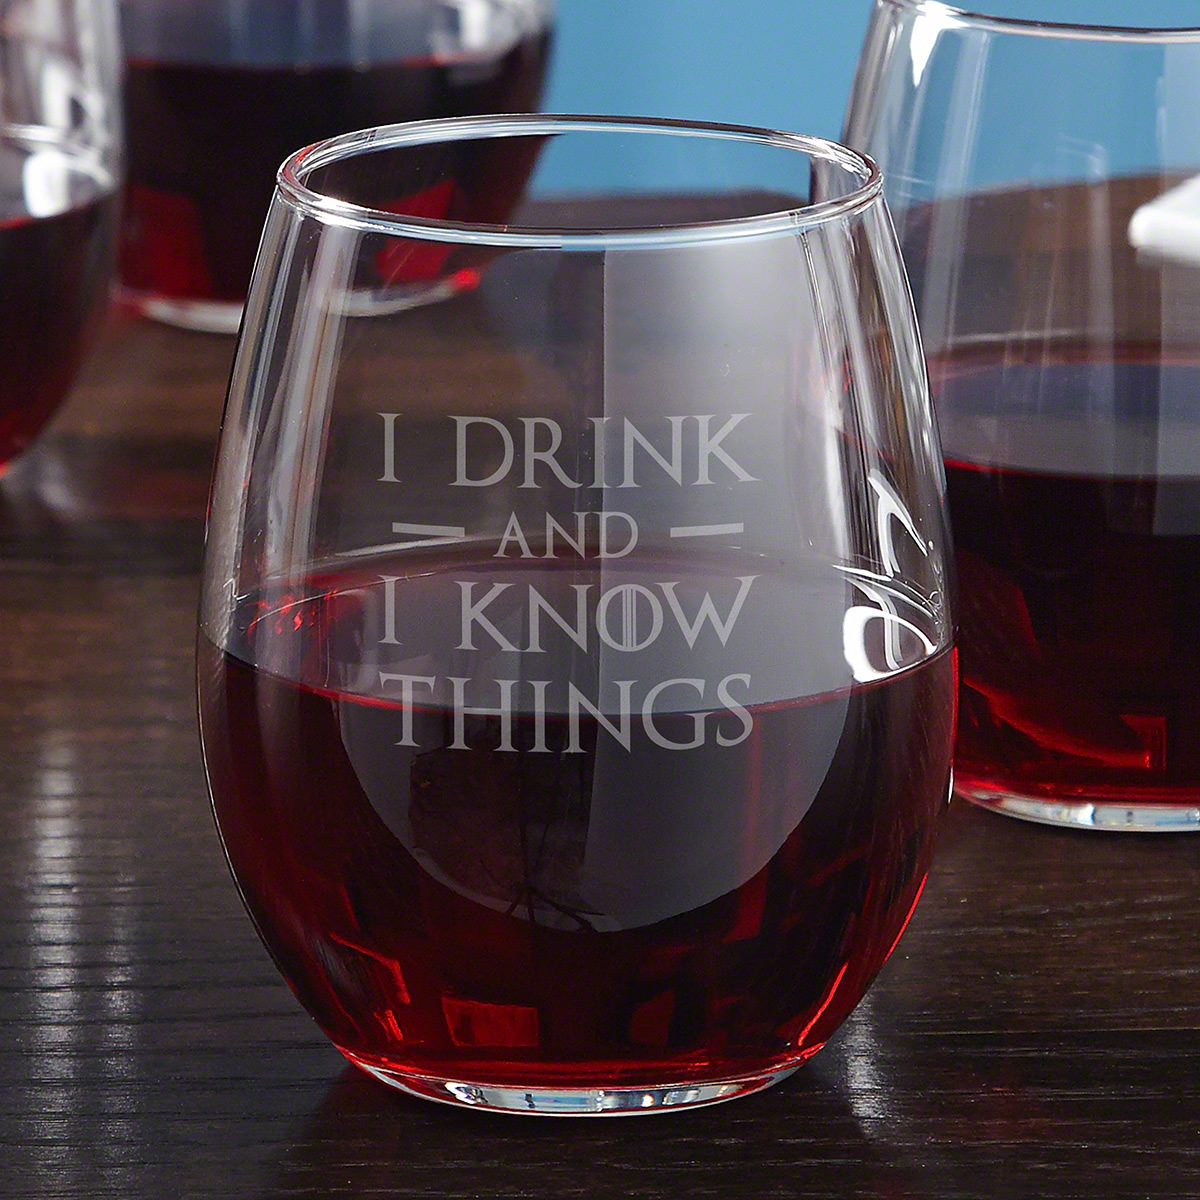 I-Drink-And-I-Know-Things-Stemless-Wine-Glass